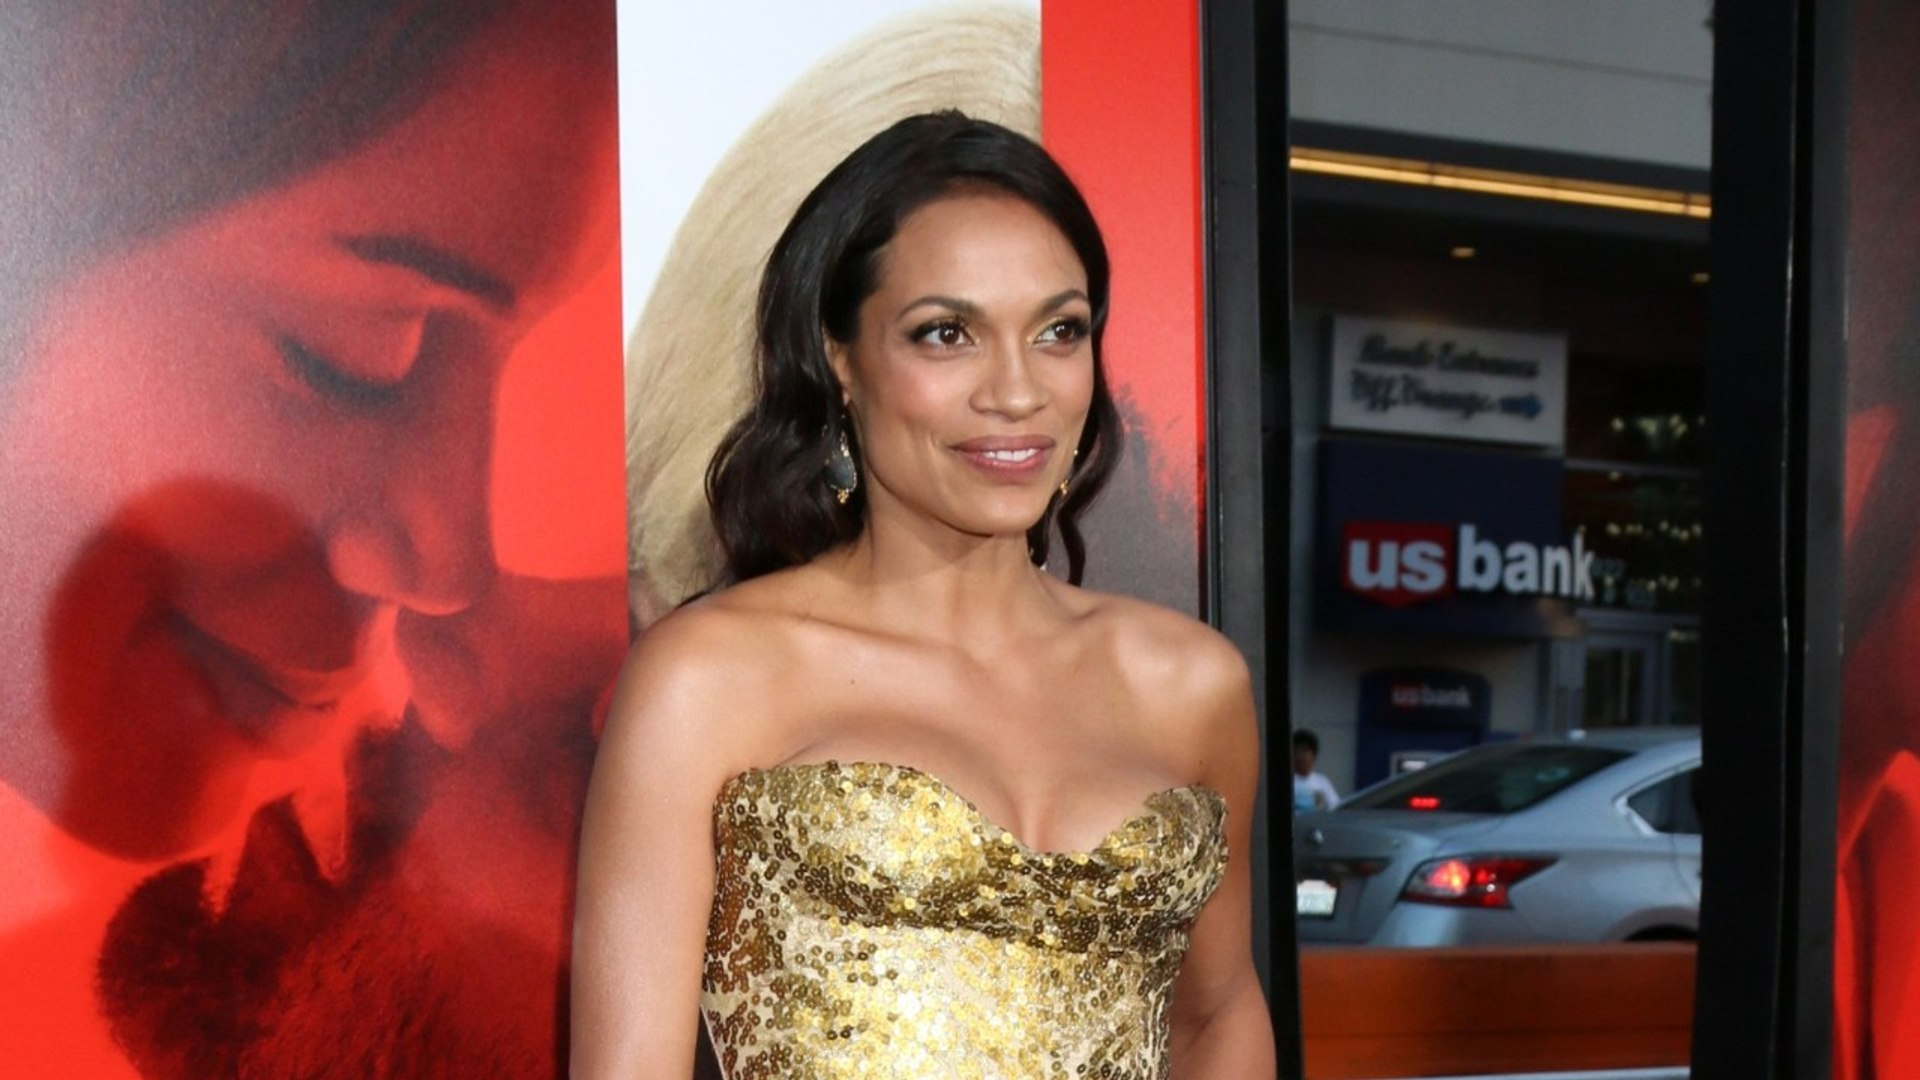 Rosario Dawson to Appear in 'New Mutants' Movie?